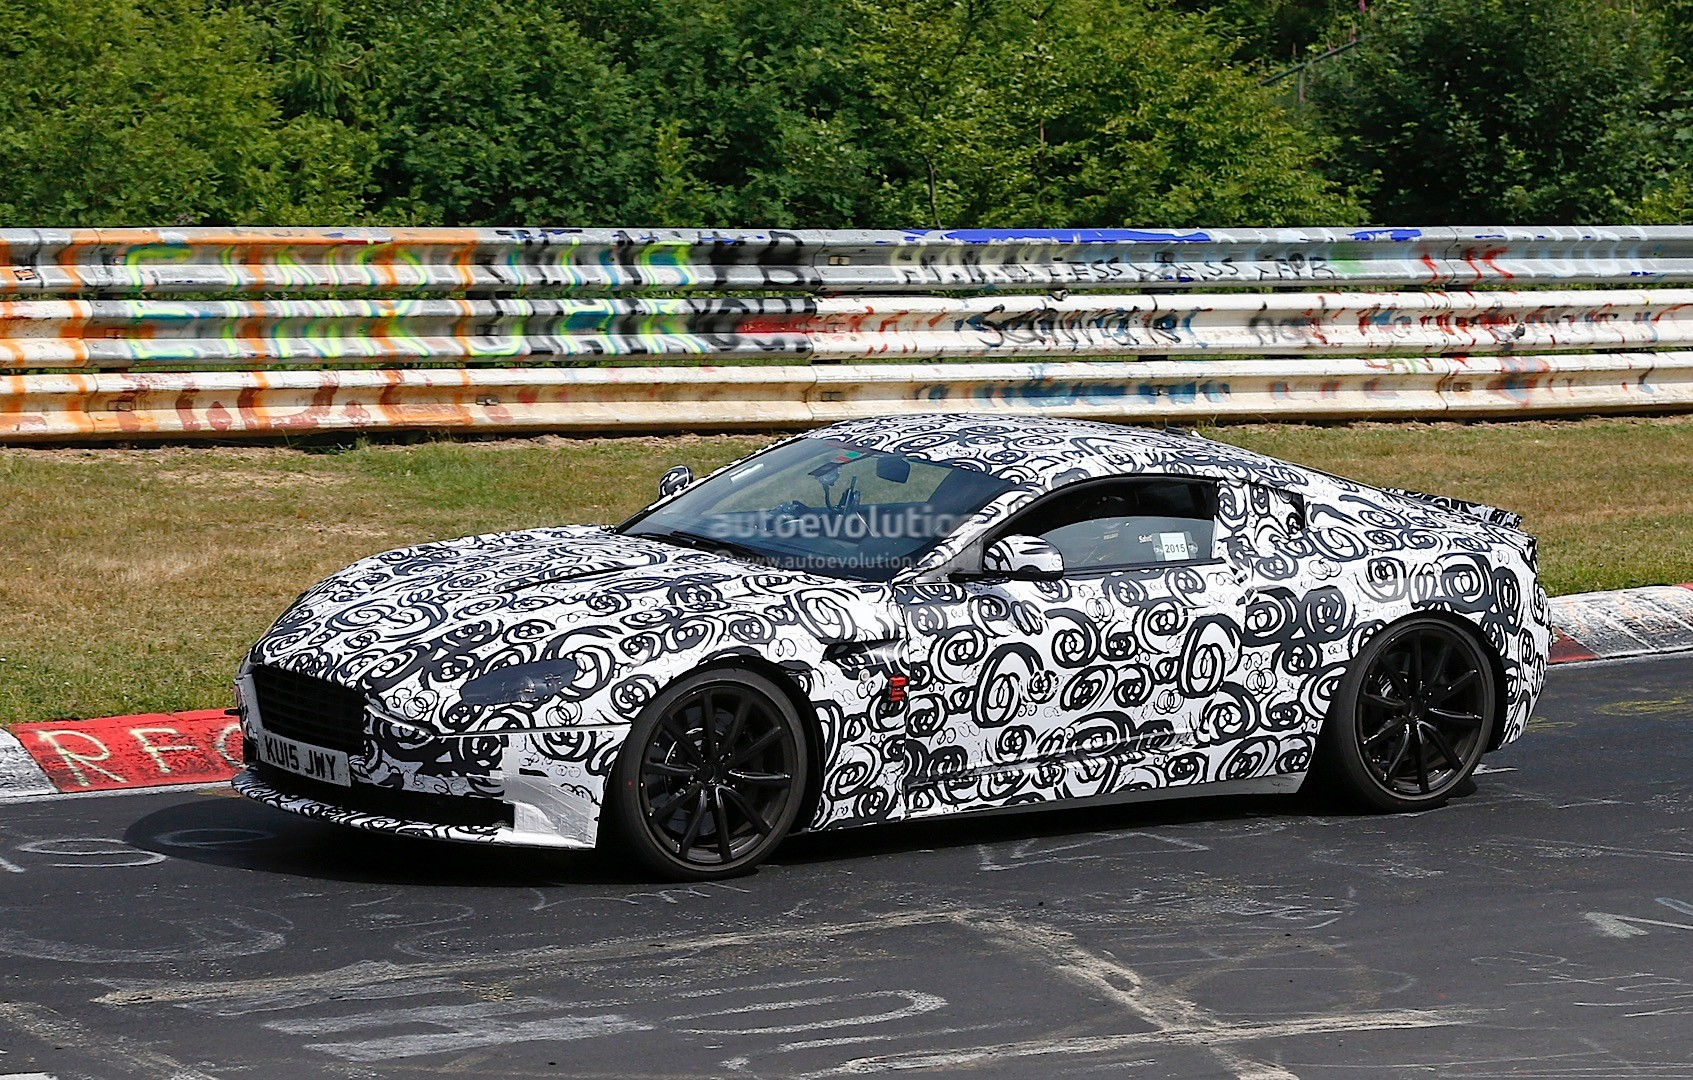 New Aston Martin Db11 Prototype Looks Like A Work In